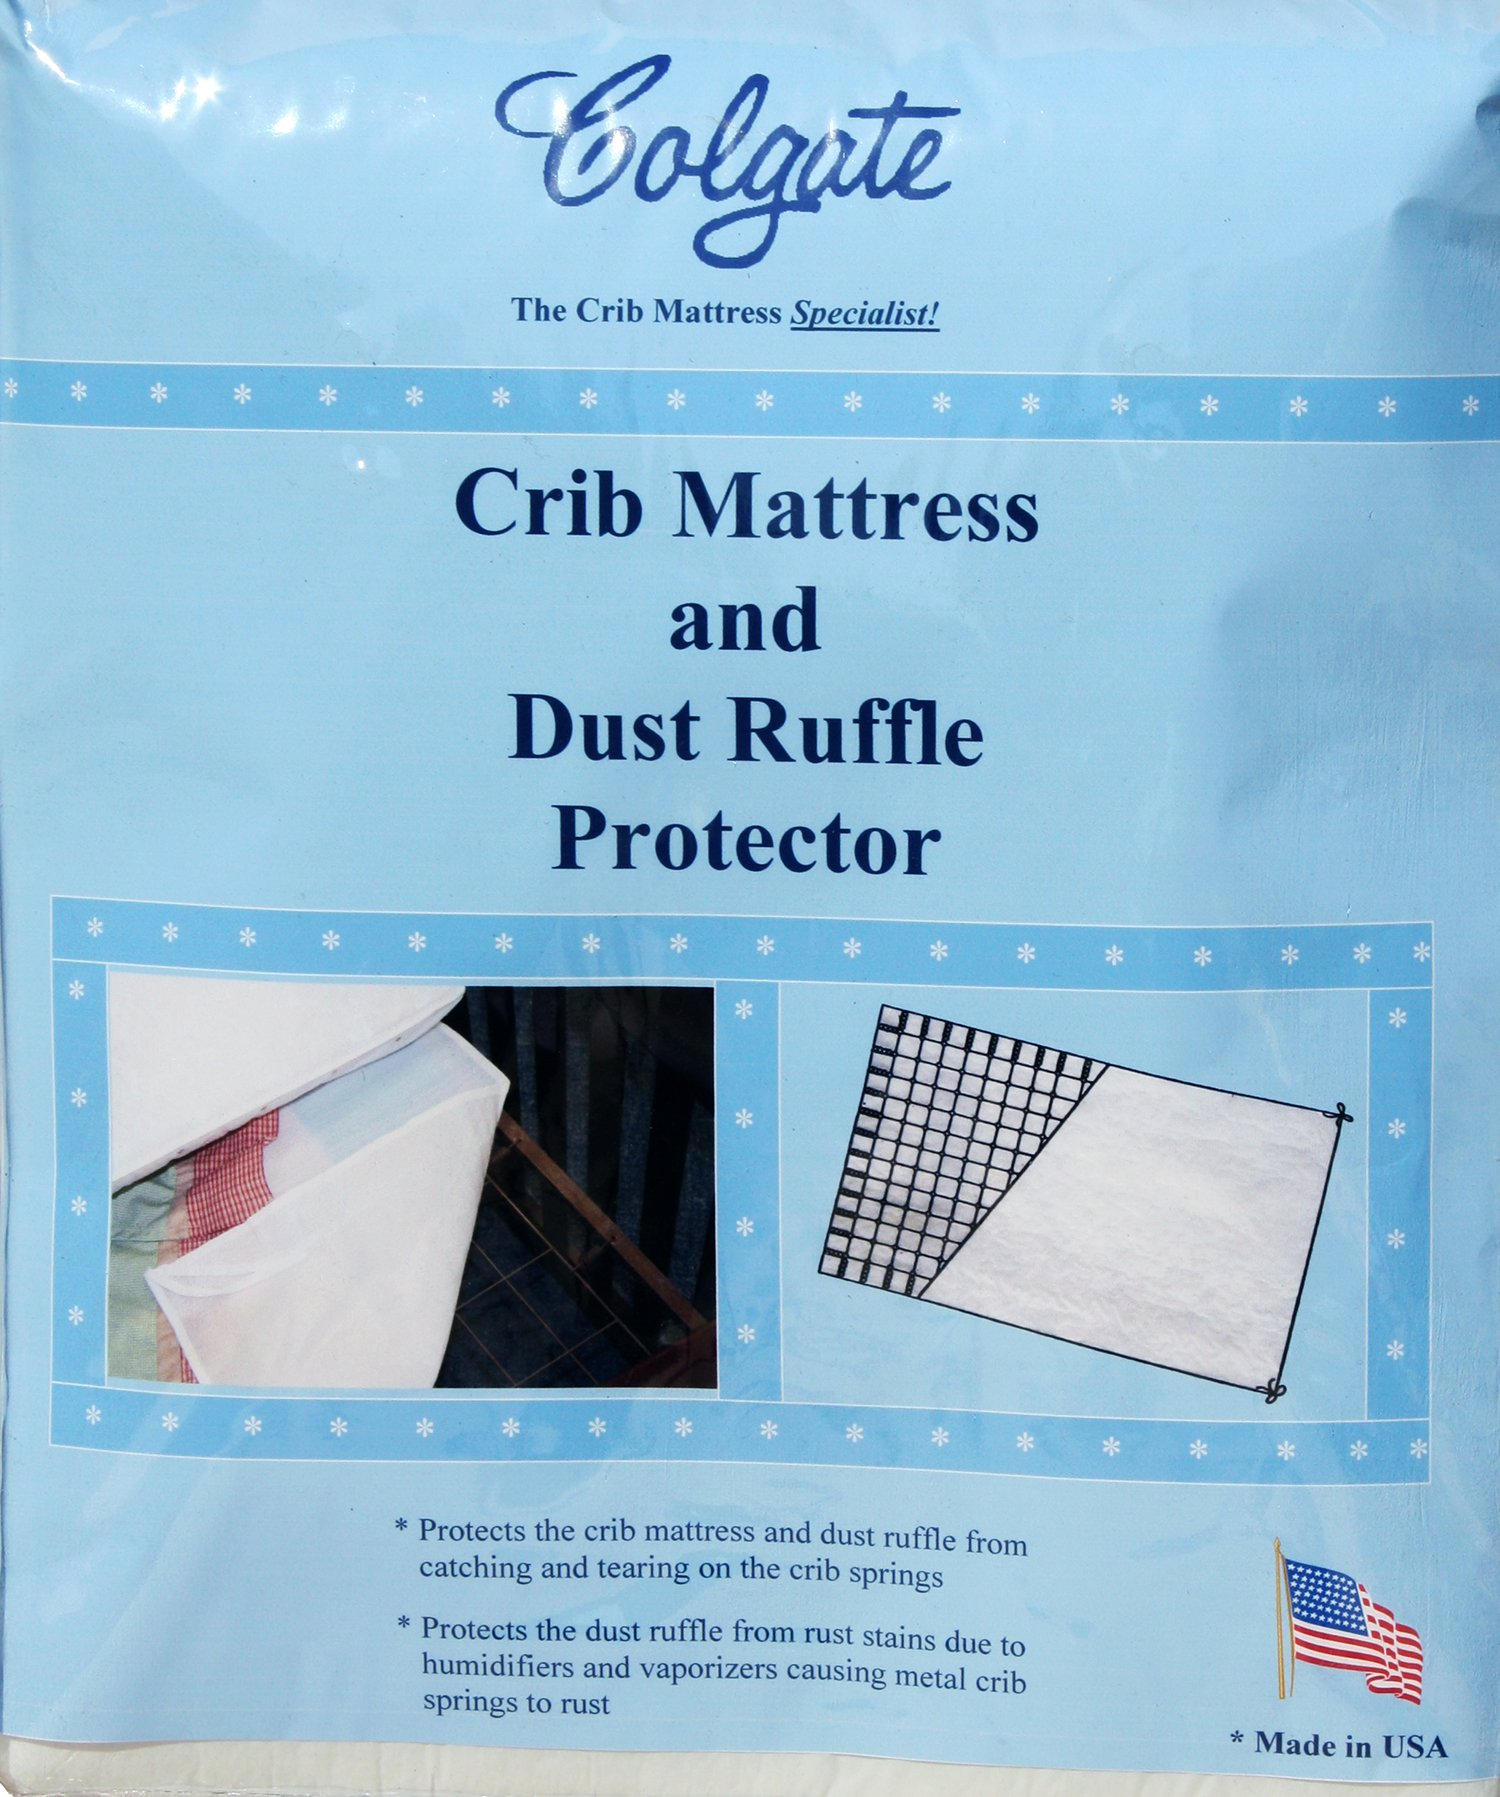 Colgate Crib Mattress and Dust Ruffle Protector |52''L x 28''W x 0.4''H |Waterproof Pad Protects Mattress from Tears and Rust Stains |Made in the USA